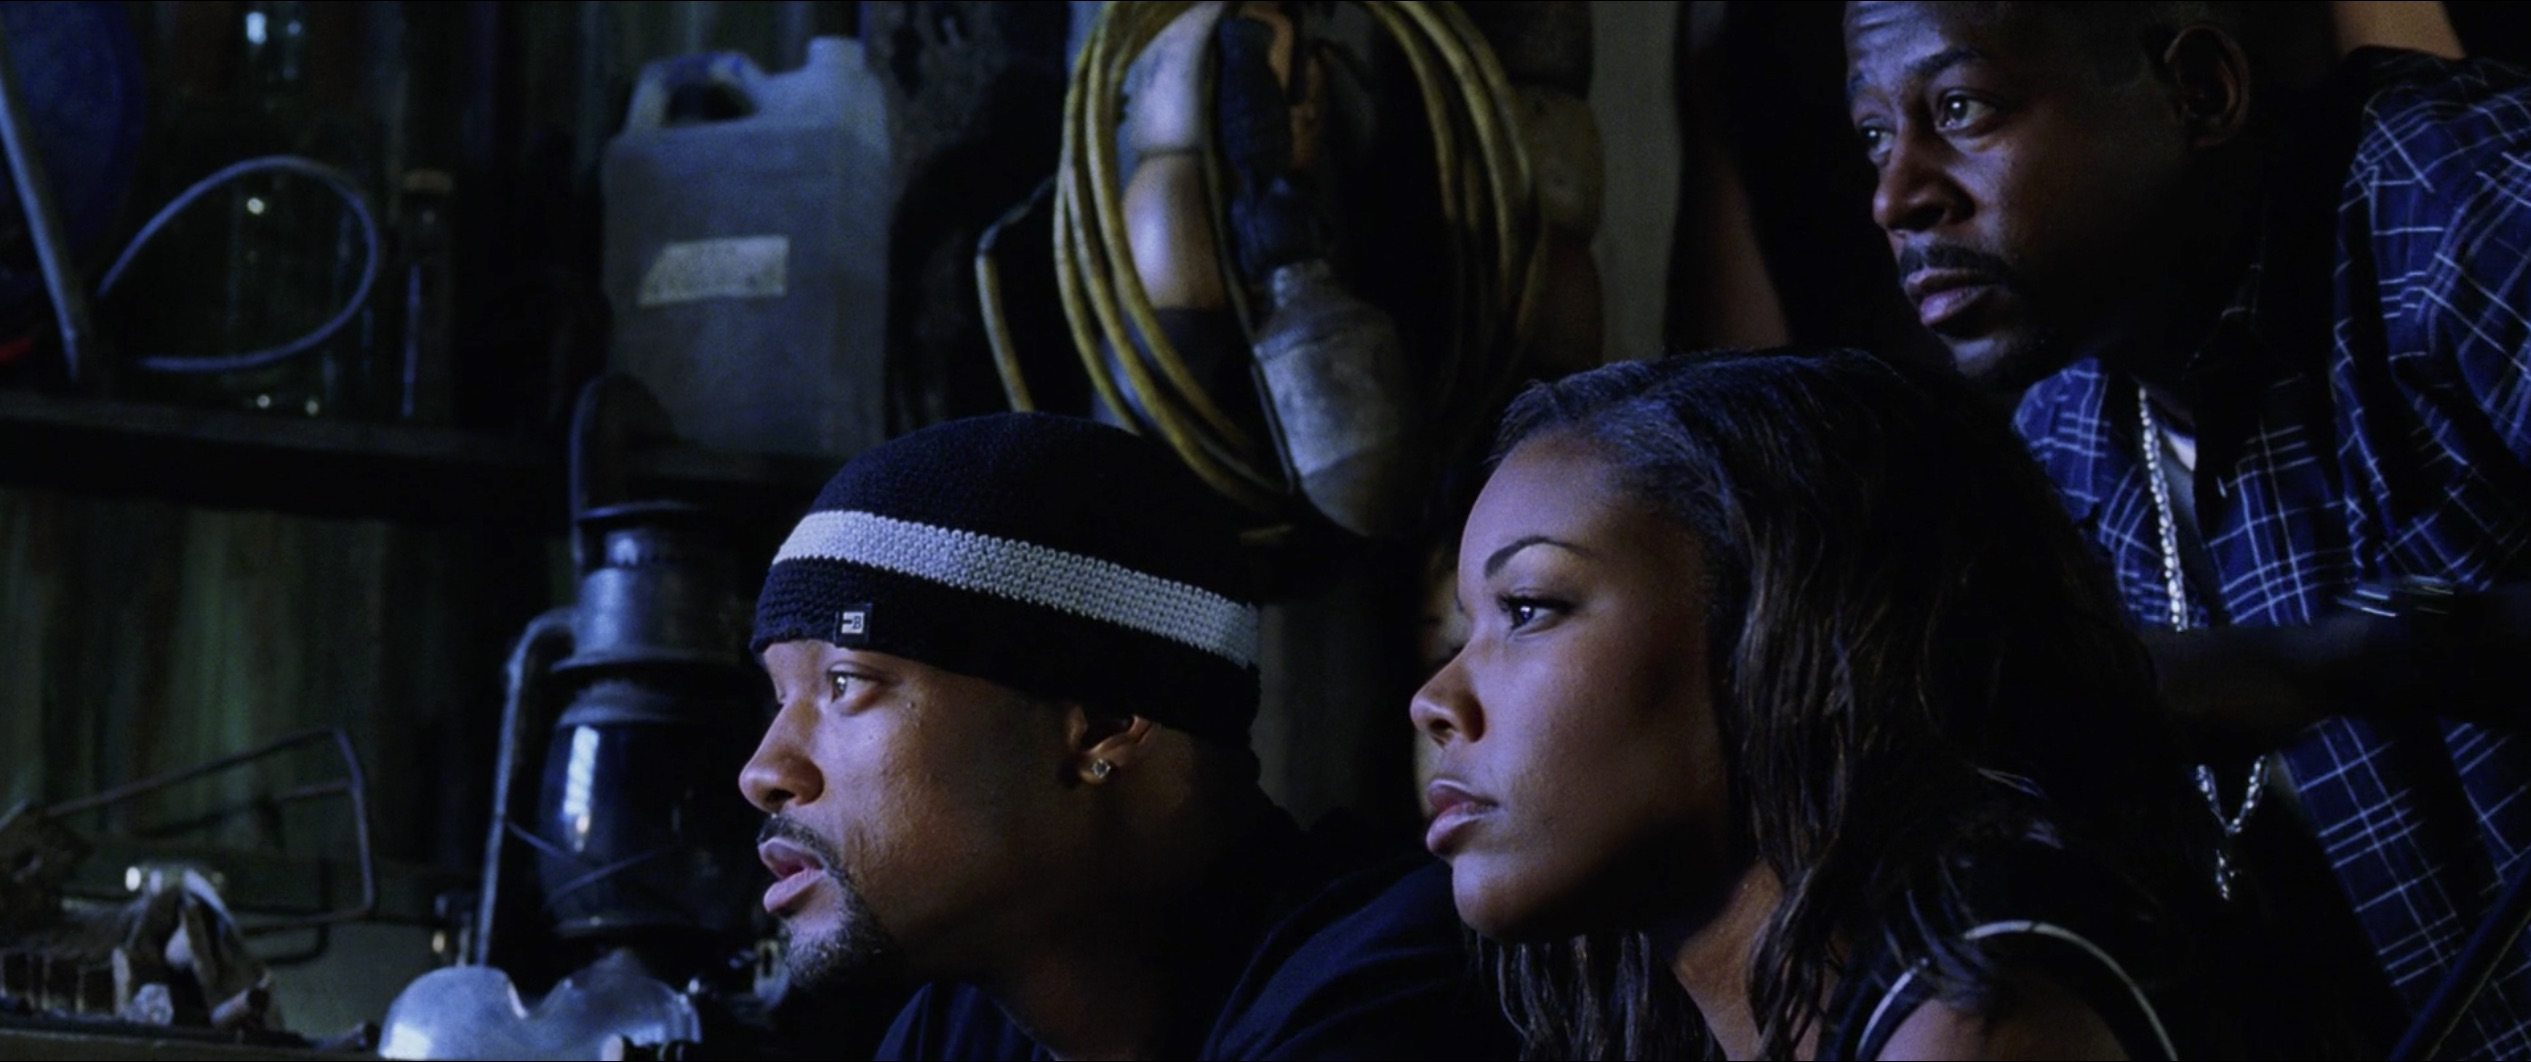 bad boys II Martin Lawrence Will Smith Gabrielle Union